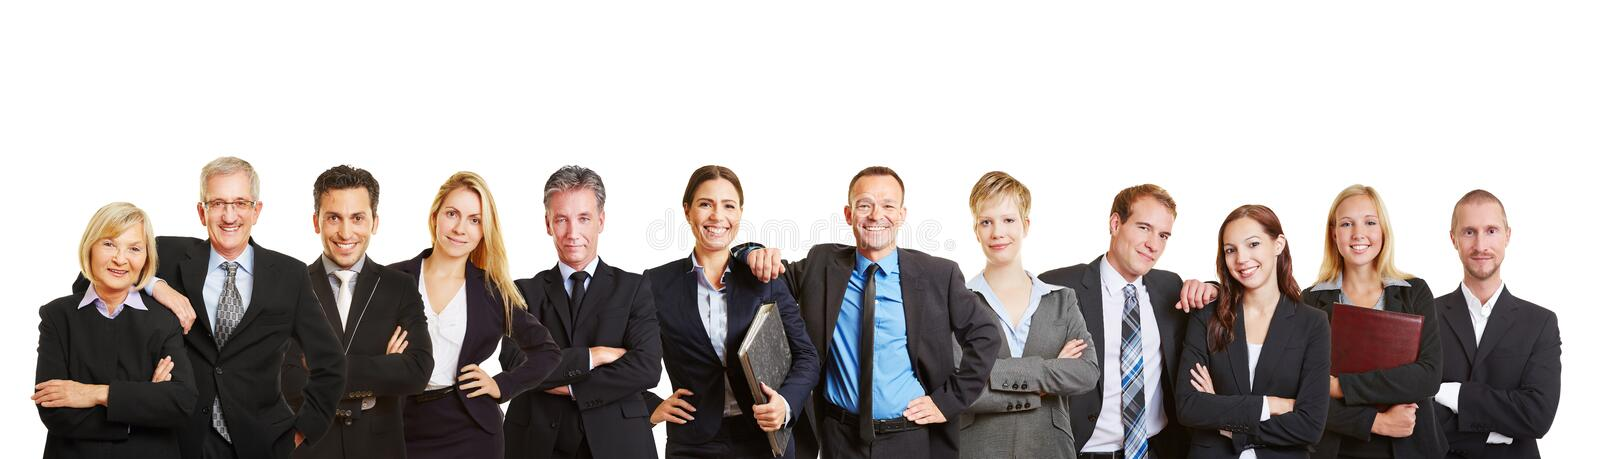 Panorama with business team and business people royalty free stock photos